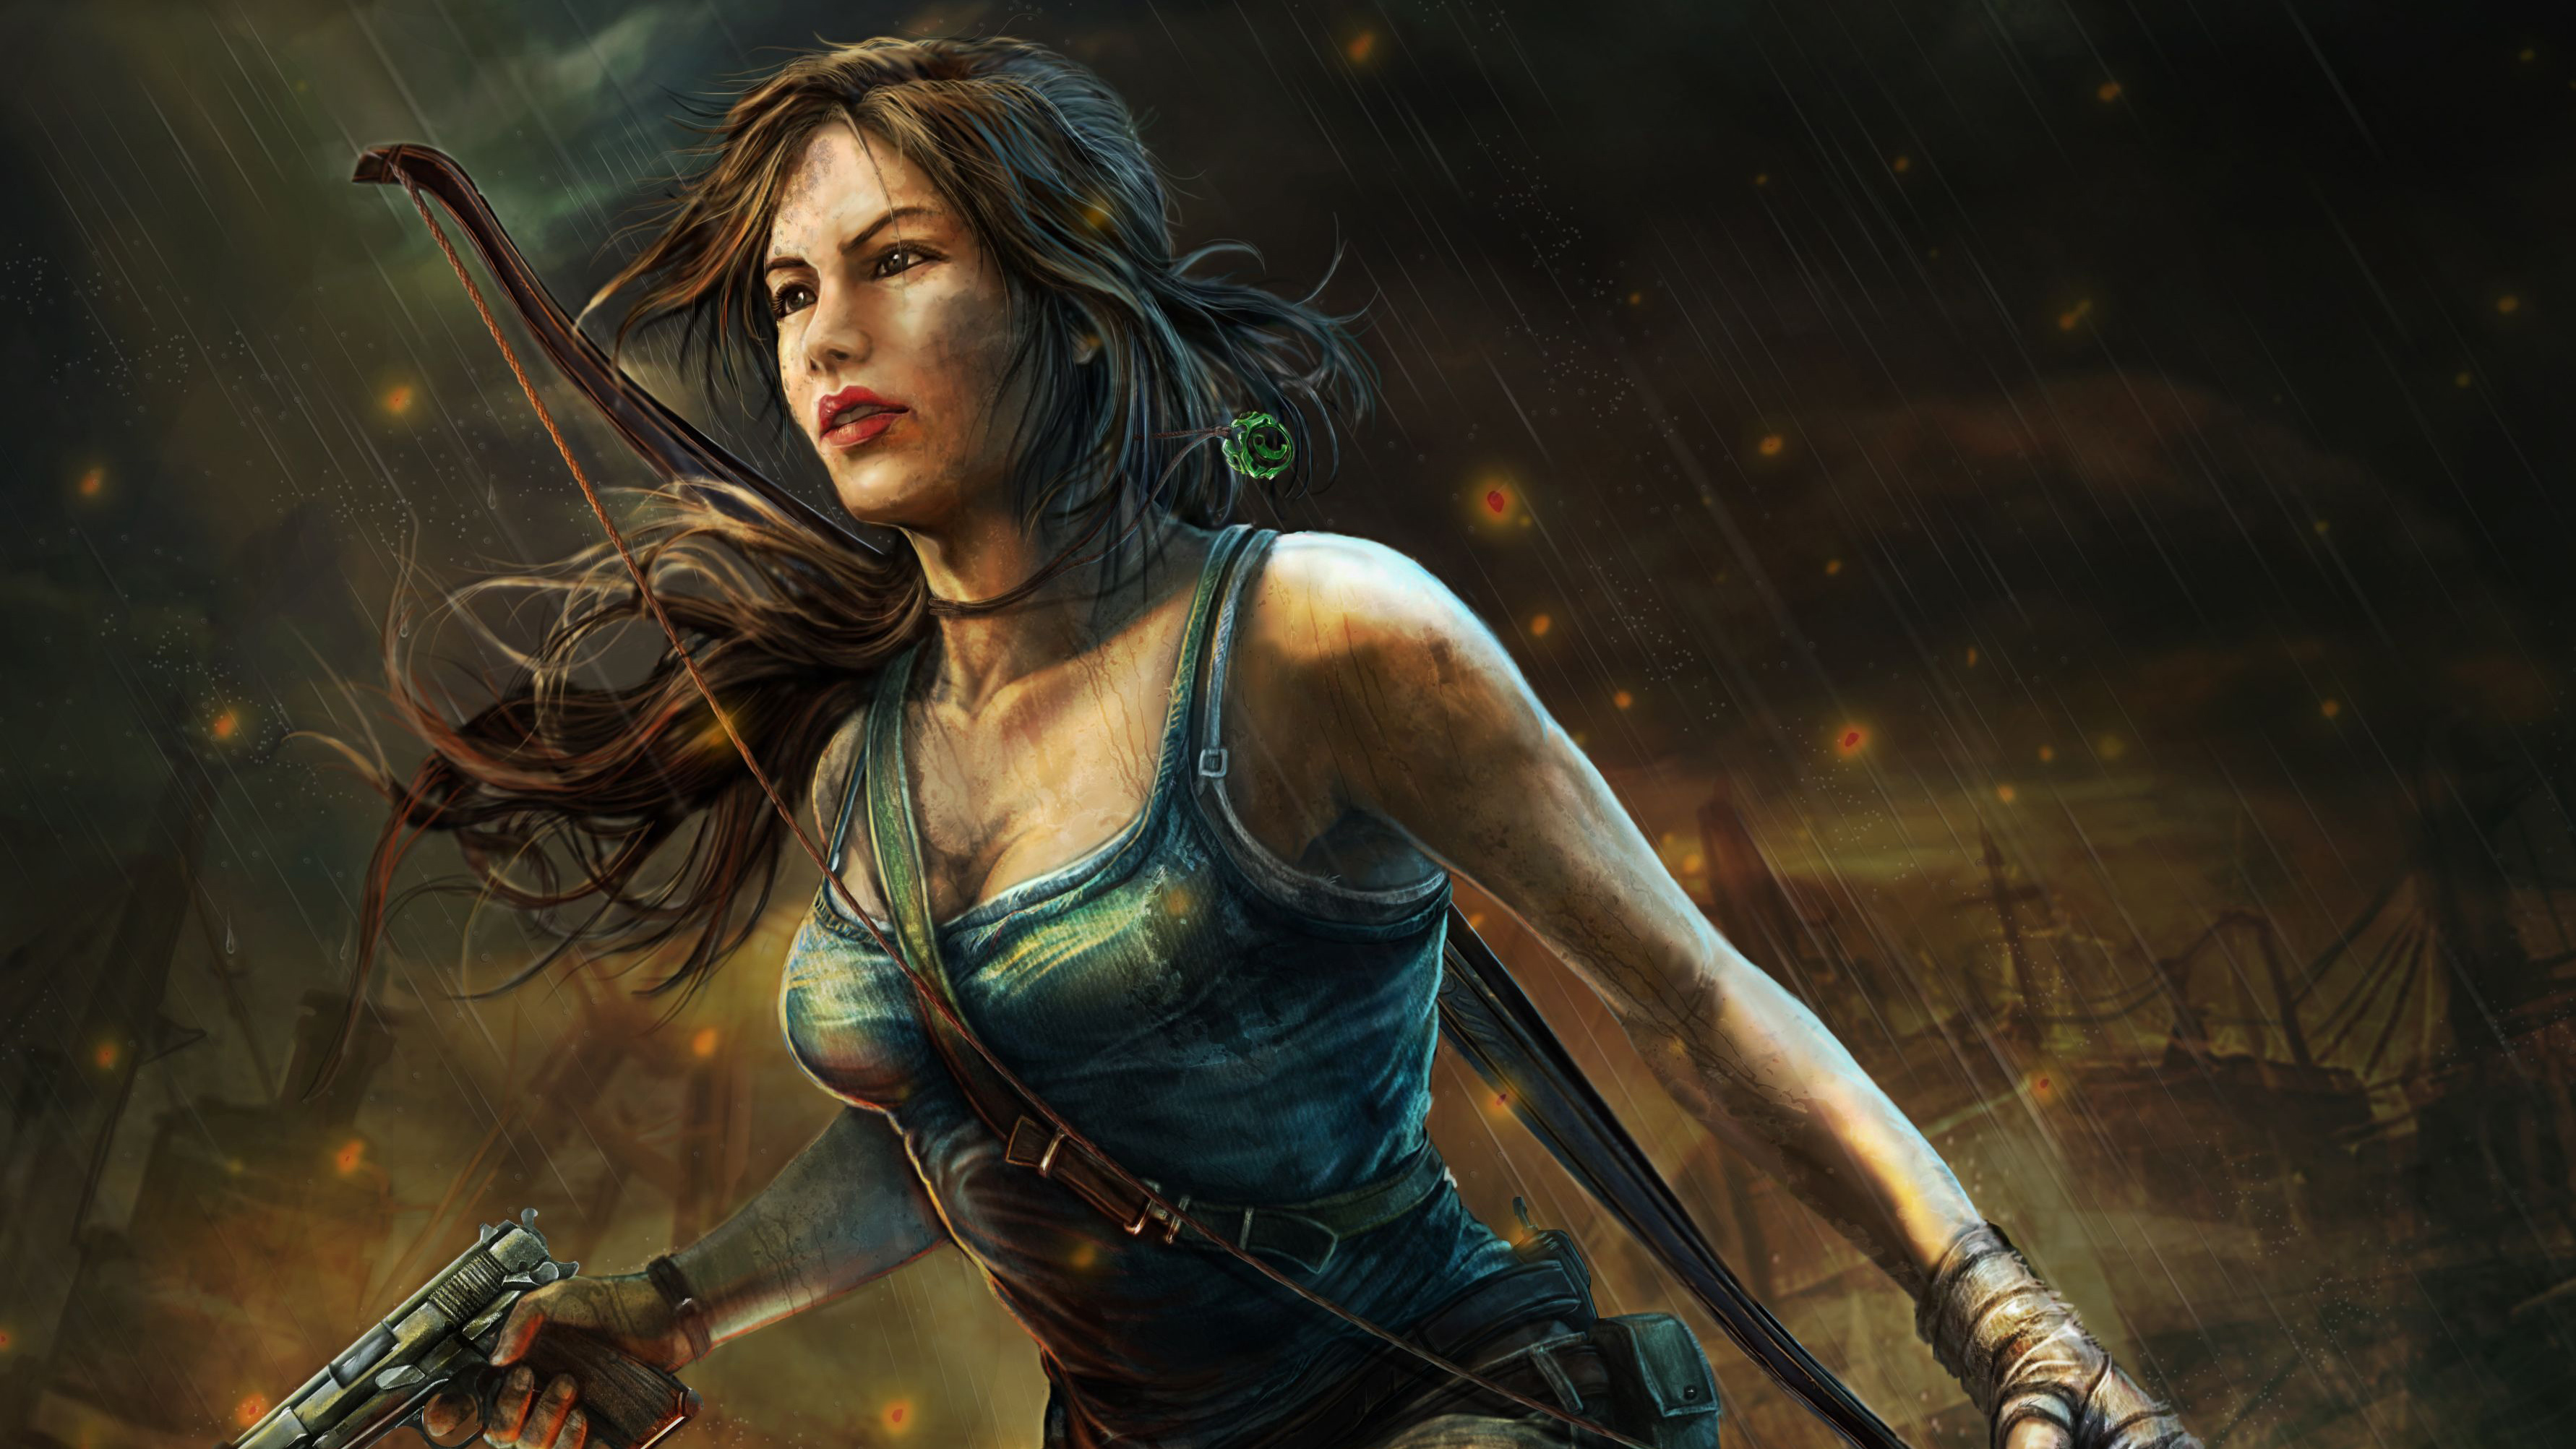 Tomb Raider 4k Art Hd Games 4k Wallpapers Images Backgrounds